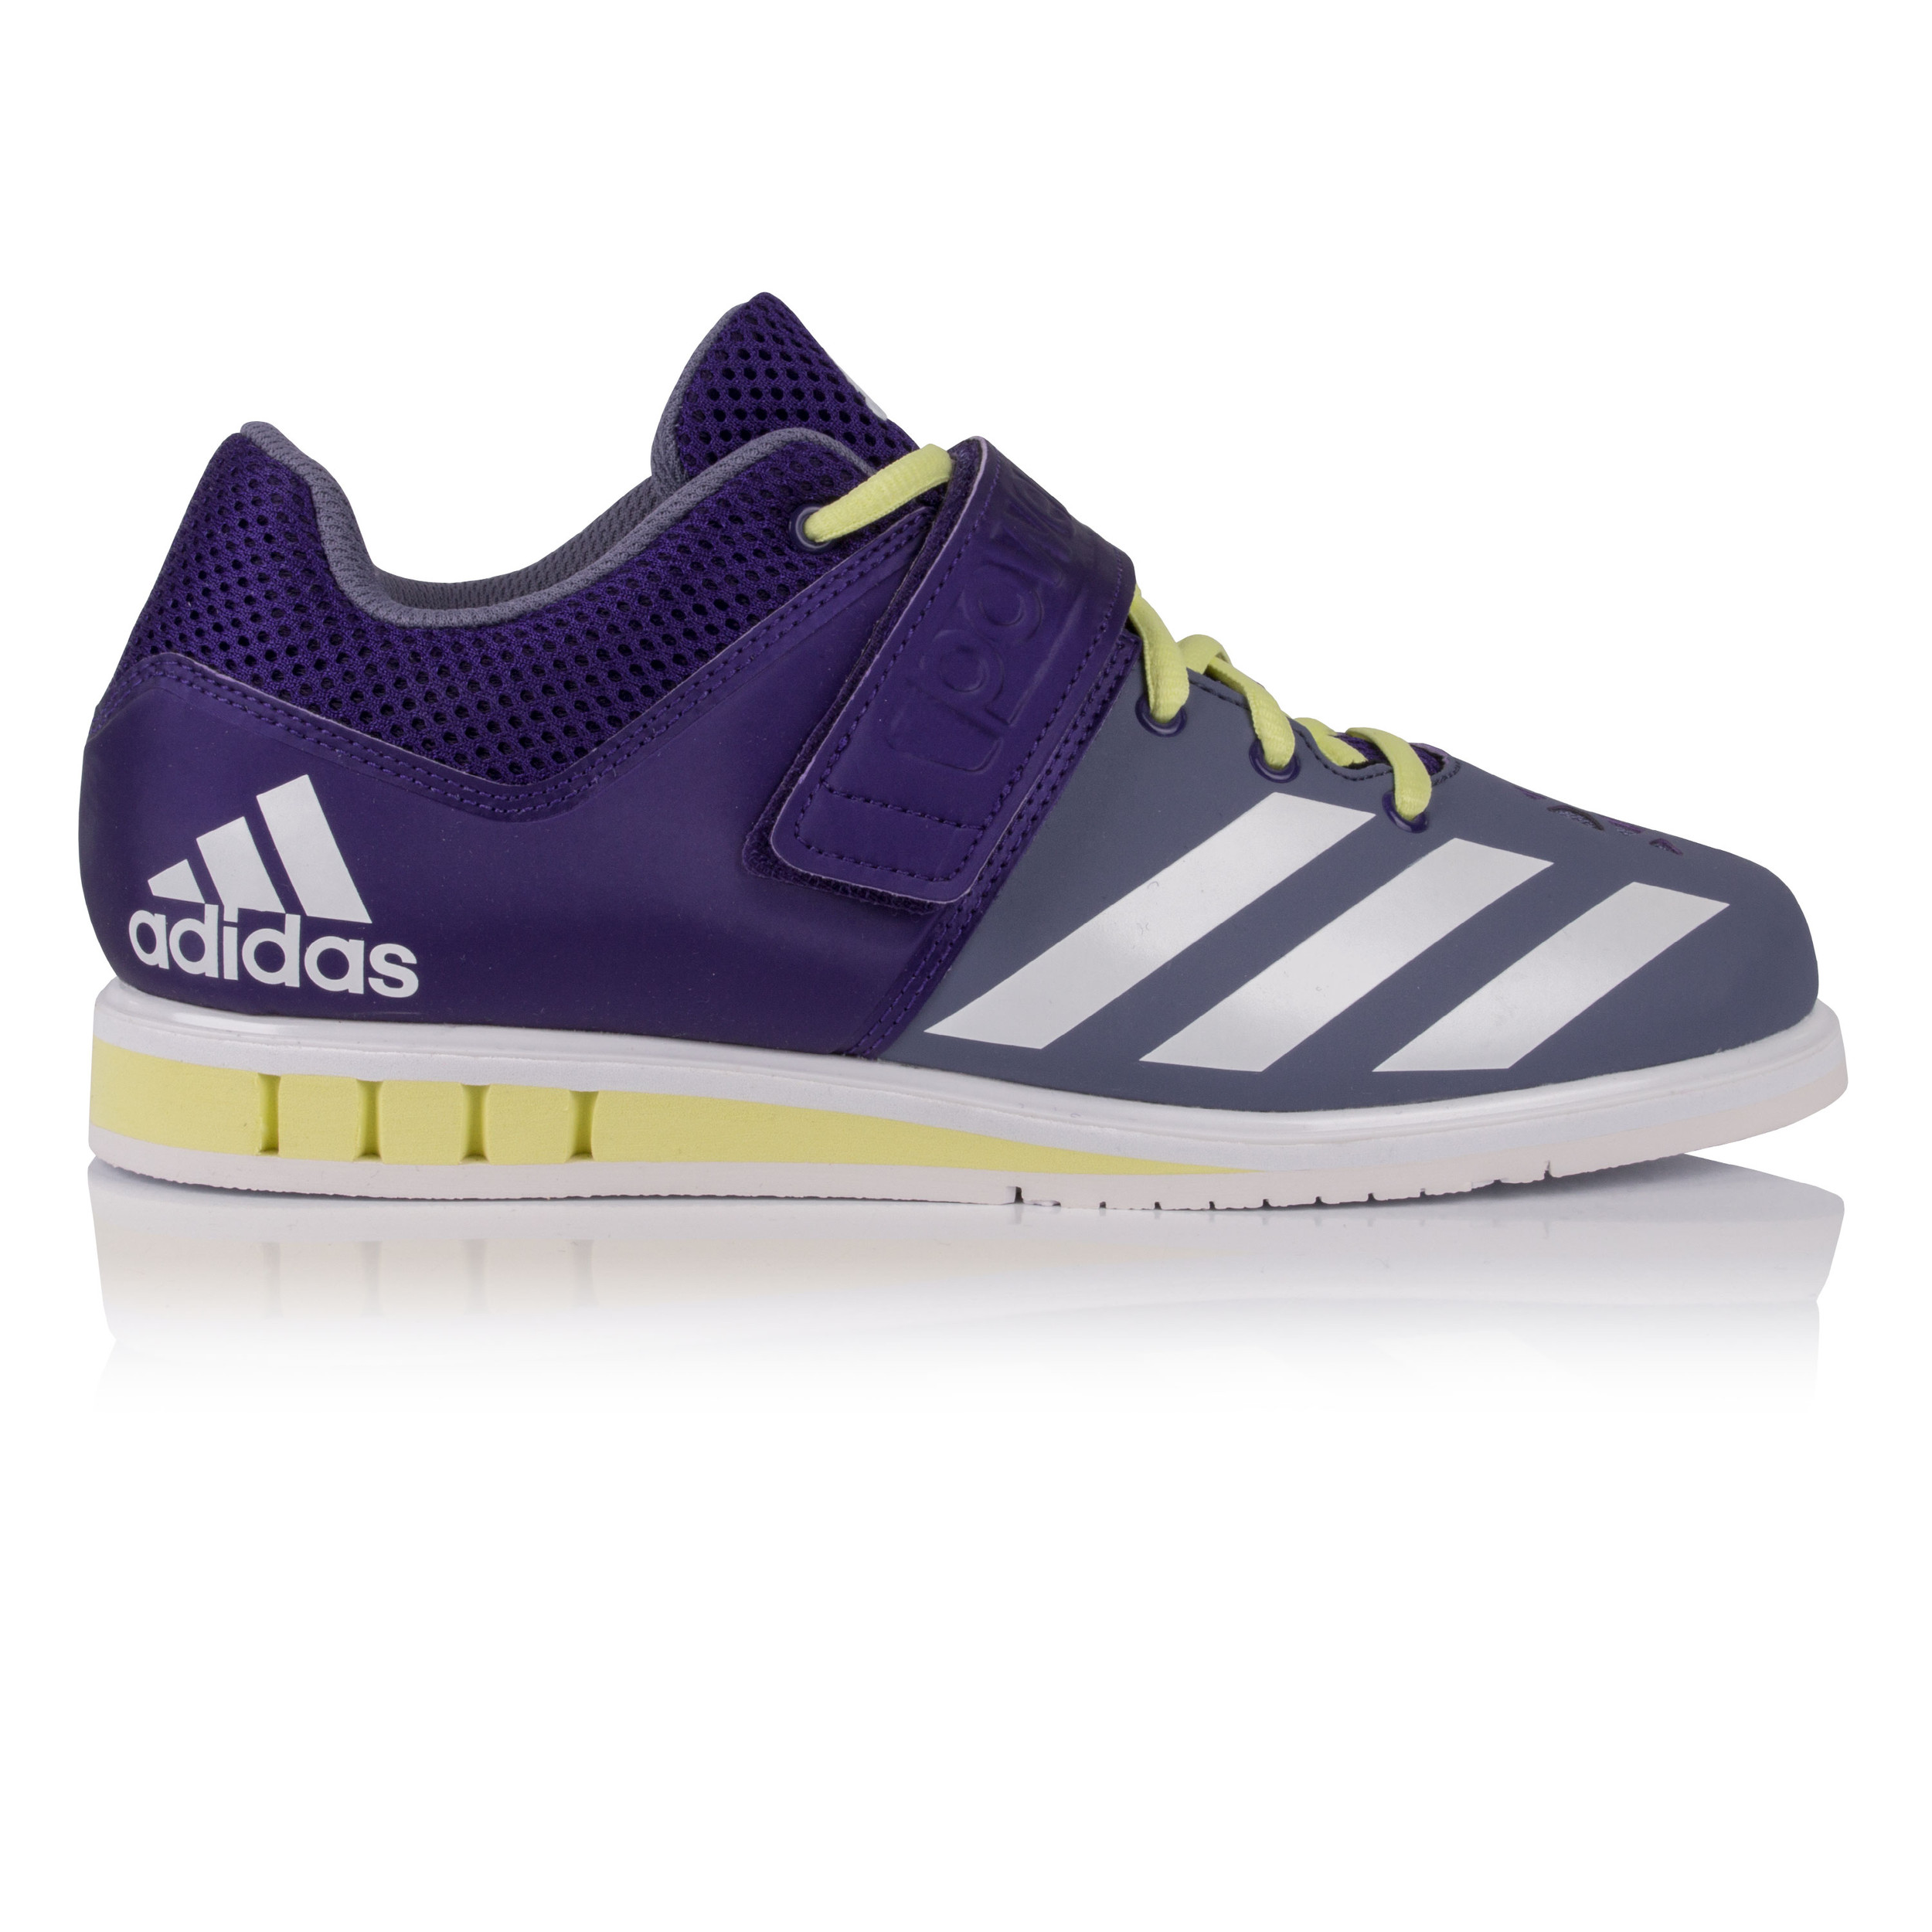 Details about adidas Womens Powerlift 3 Weightlifting Shoes Purple Sports  Breathable 93ed755ef7